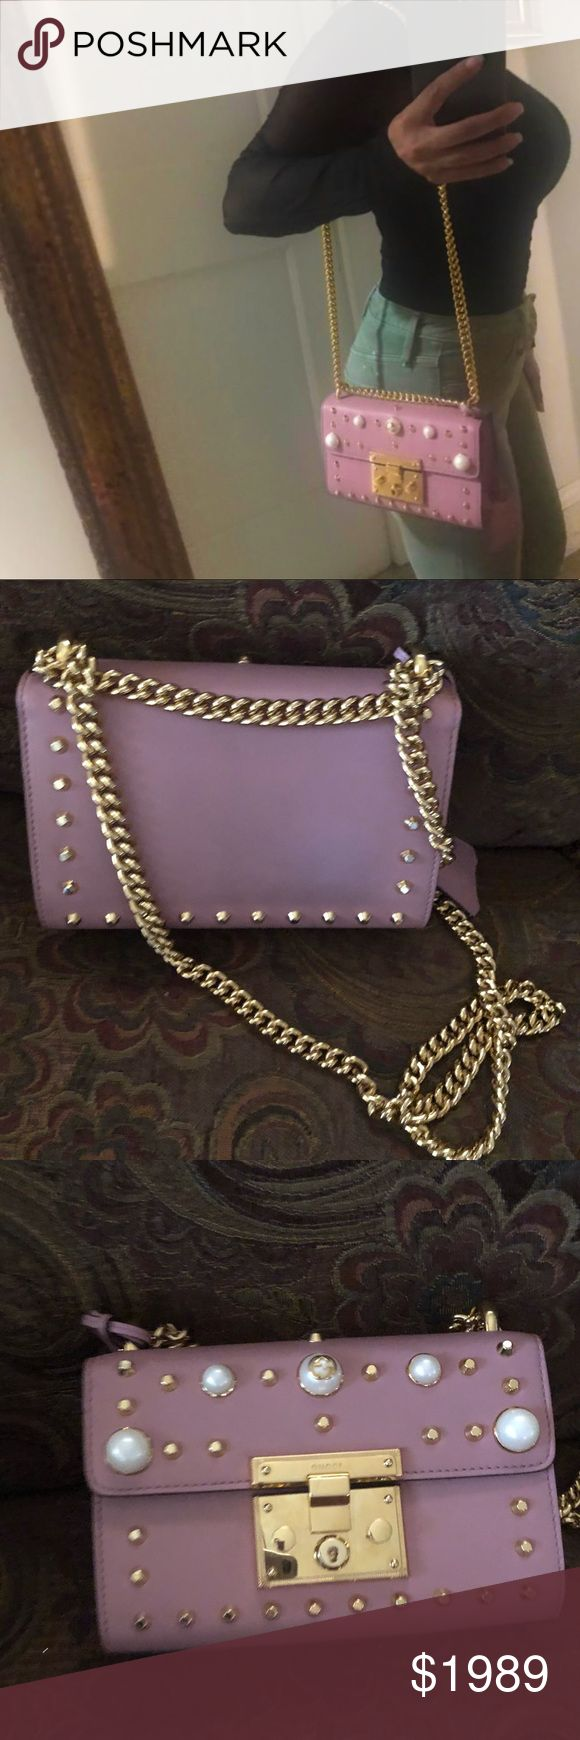 Gucci pink handbag gold chain purse bag pearl top Gucci pink studded padlock shoulder bag  purchased directly From Gucci.. only used for three months.. shows normal wear! Paid over $2,600 after taxes.. this bag is amazing!! I get compliments every time I wear it  100 percent authentic guaranteed.. no trades.. box and dust bag are not included... but this will be carefully wrapped and packaged Gucci Bags Shoulder Bags